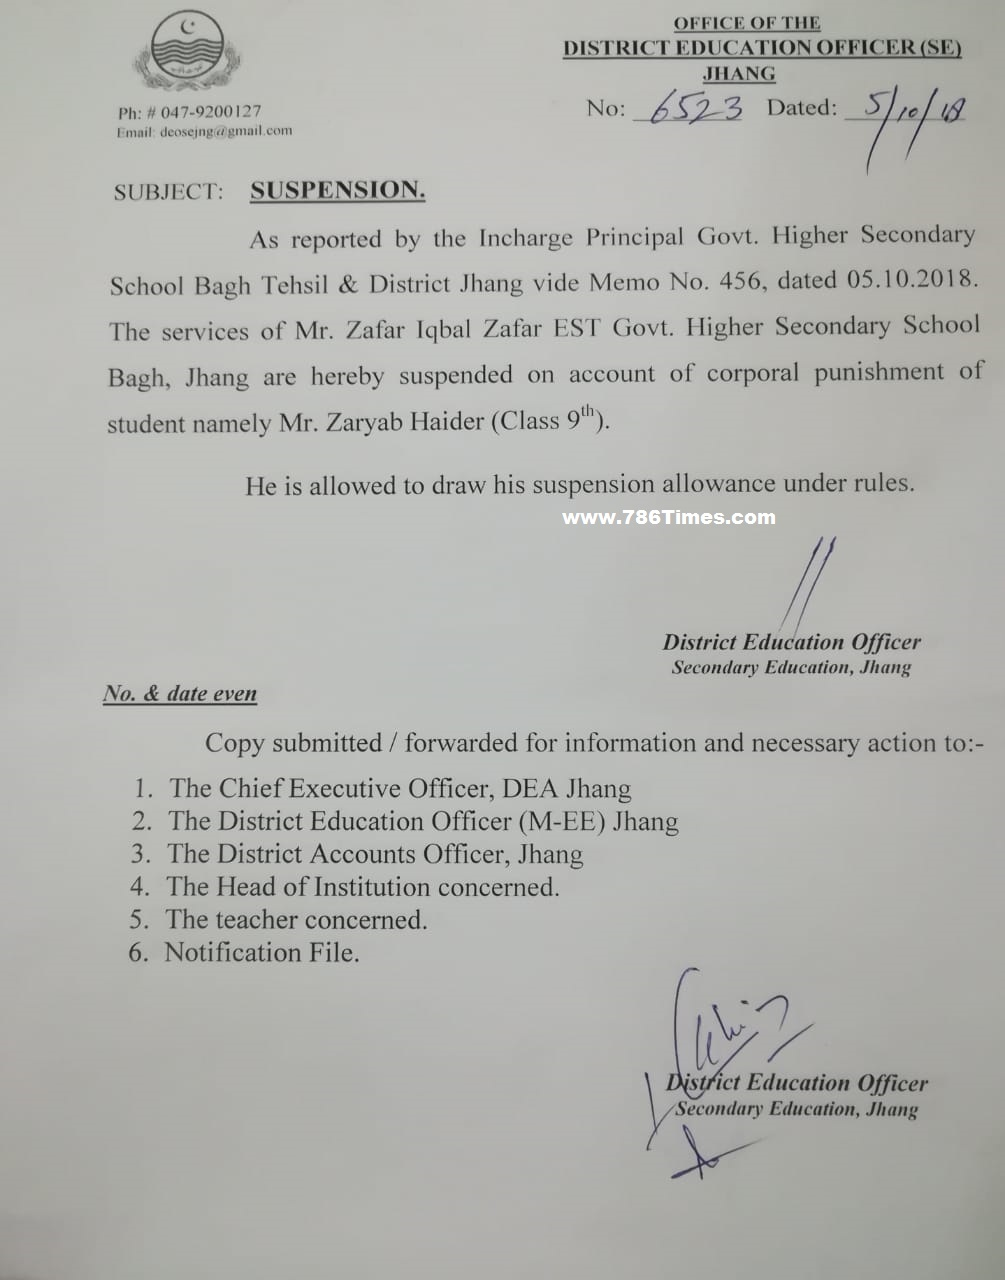 SUSPENSION OF A TEACHER ON CORPORAL PUNISHMENT IN JHANG